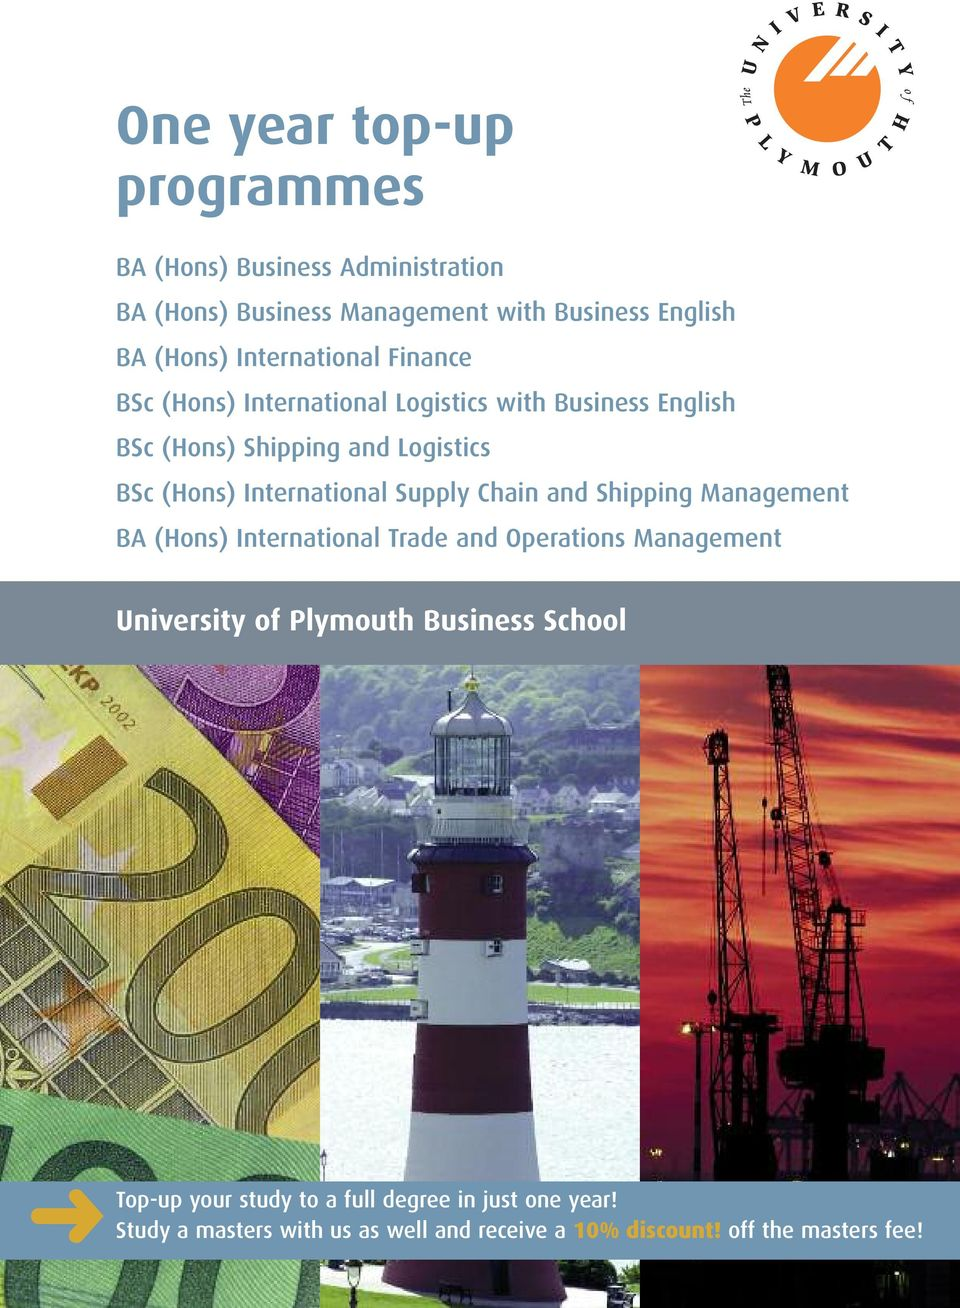 International Supply Chain and Shipping Management BA (Hons) International Trade and Operations Management University of Plymouth